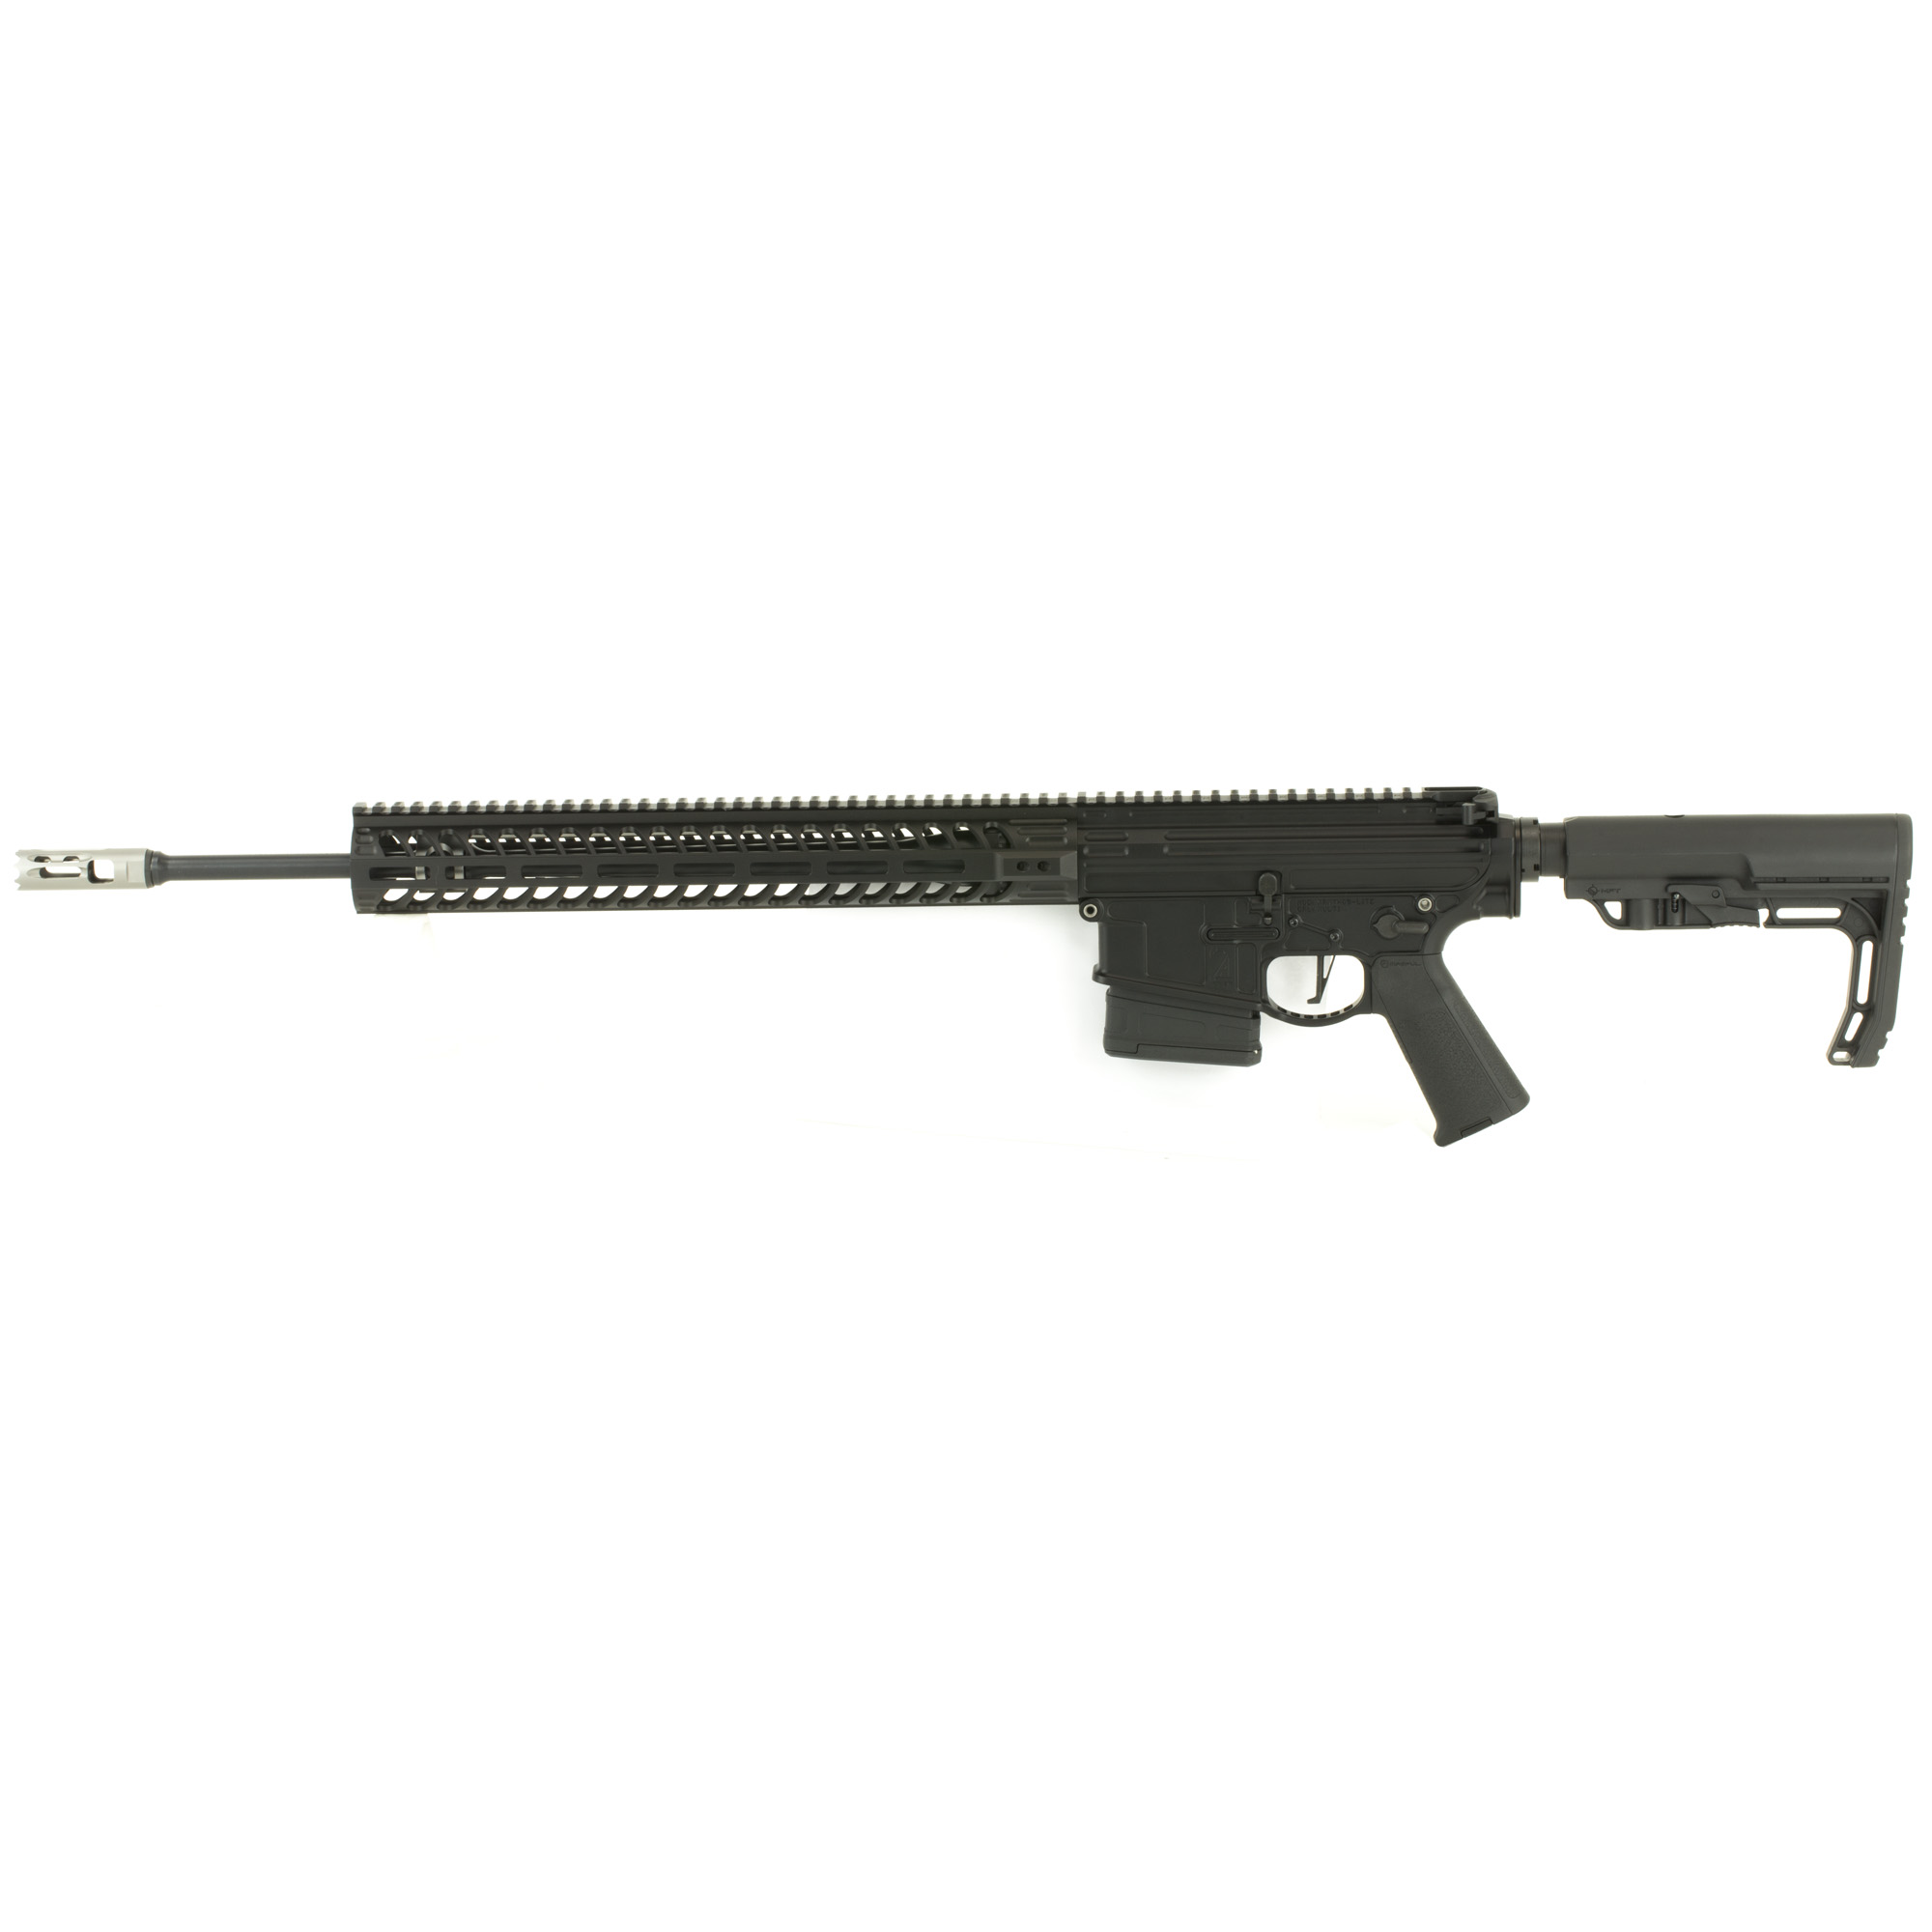 "2a Xanthos 6.5creed 20"" M-lok Blk"